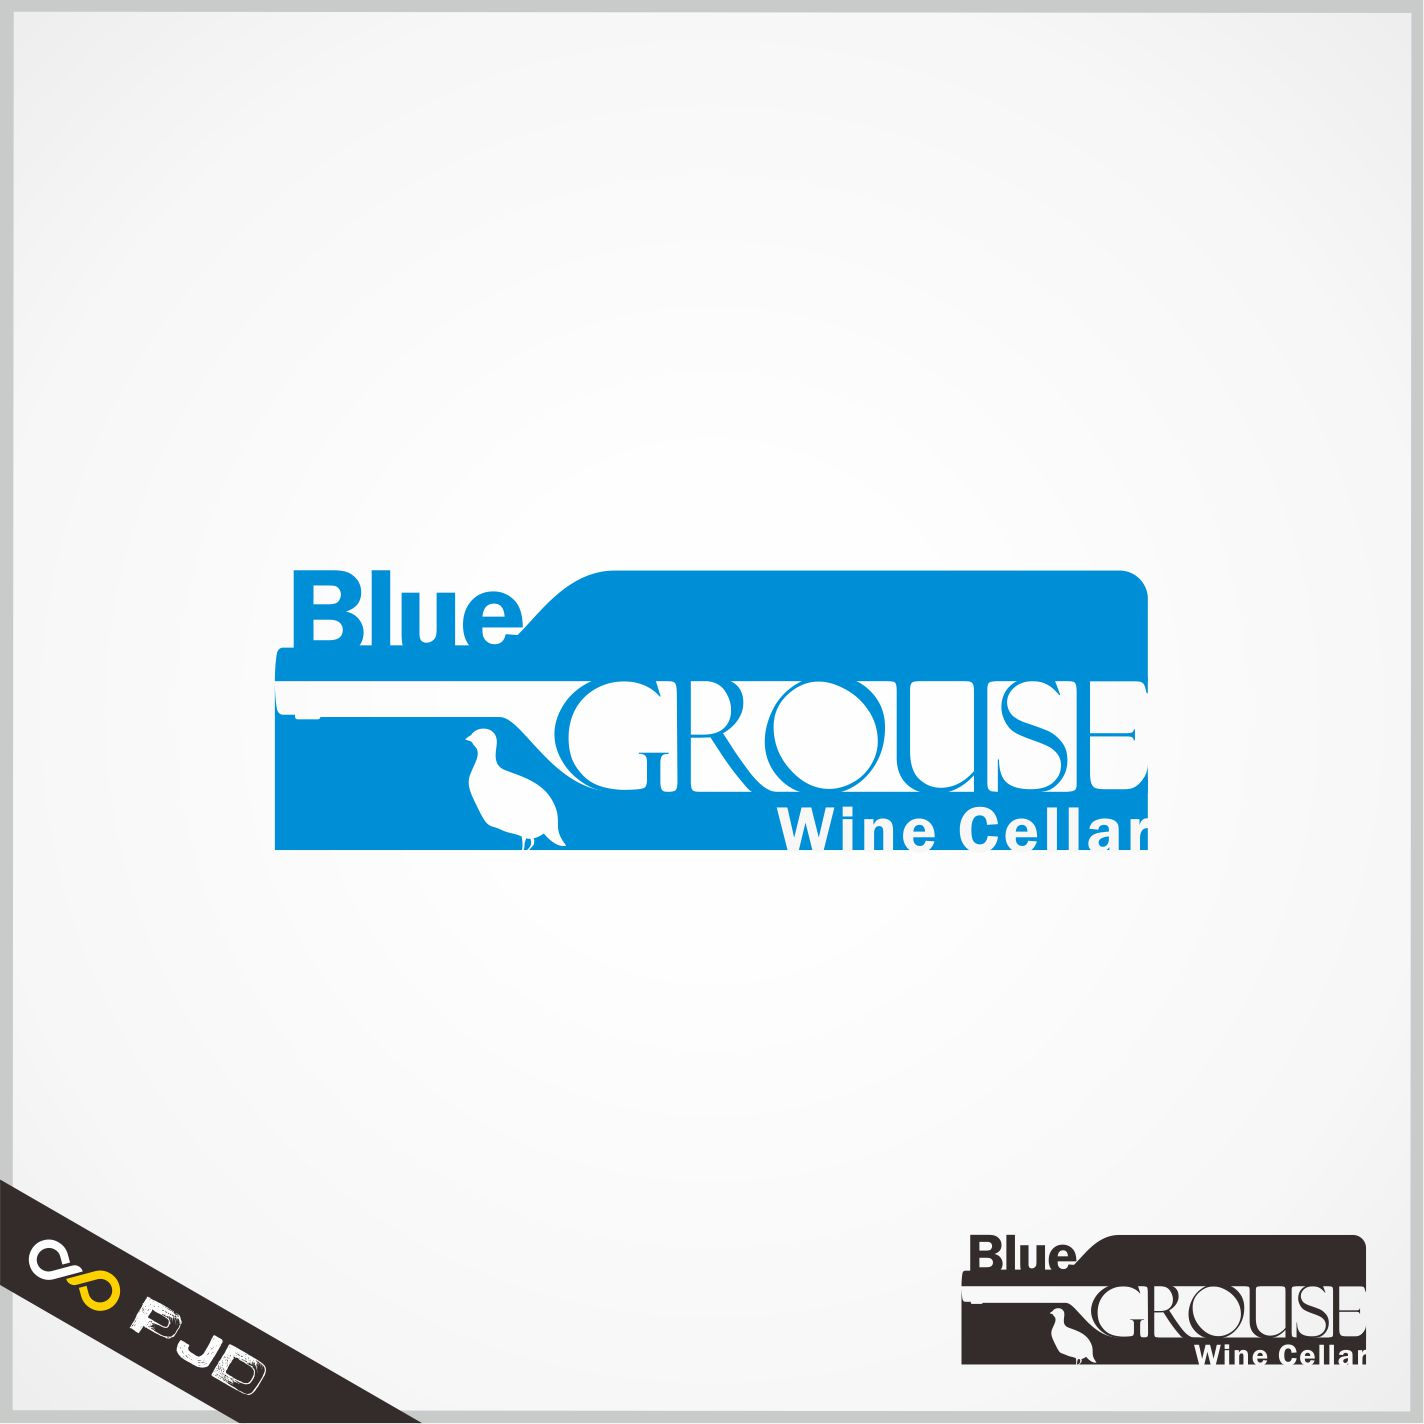 Logo Design by PJD - Entry No. 176 in the Logo Design Contest Creative Logo Design for Blue Grouse Wine Cellars.